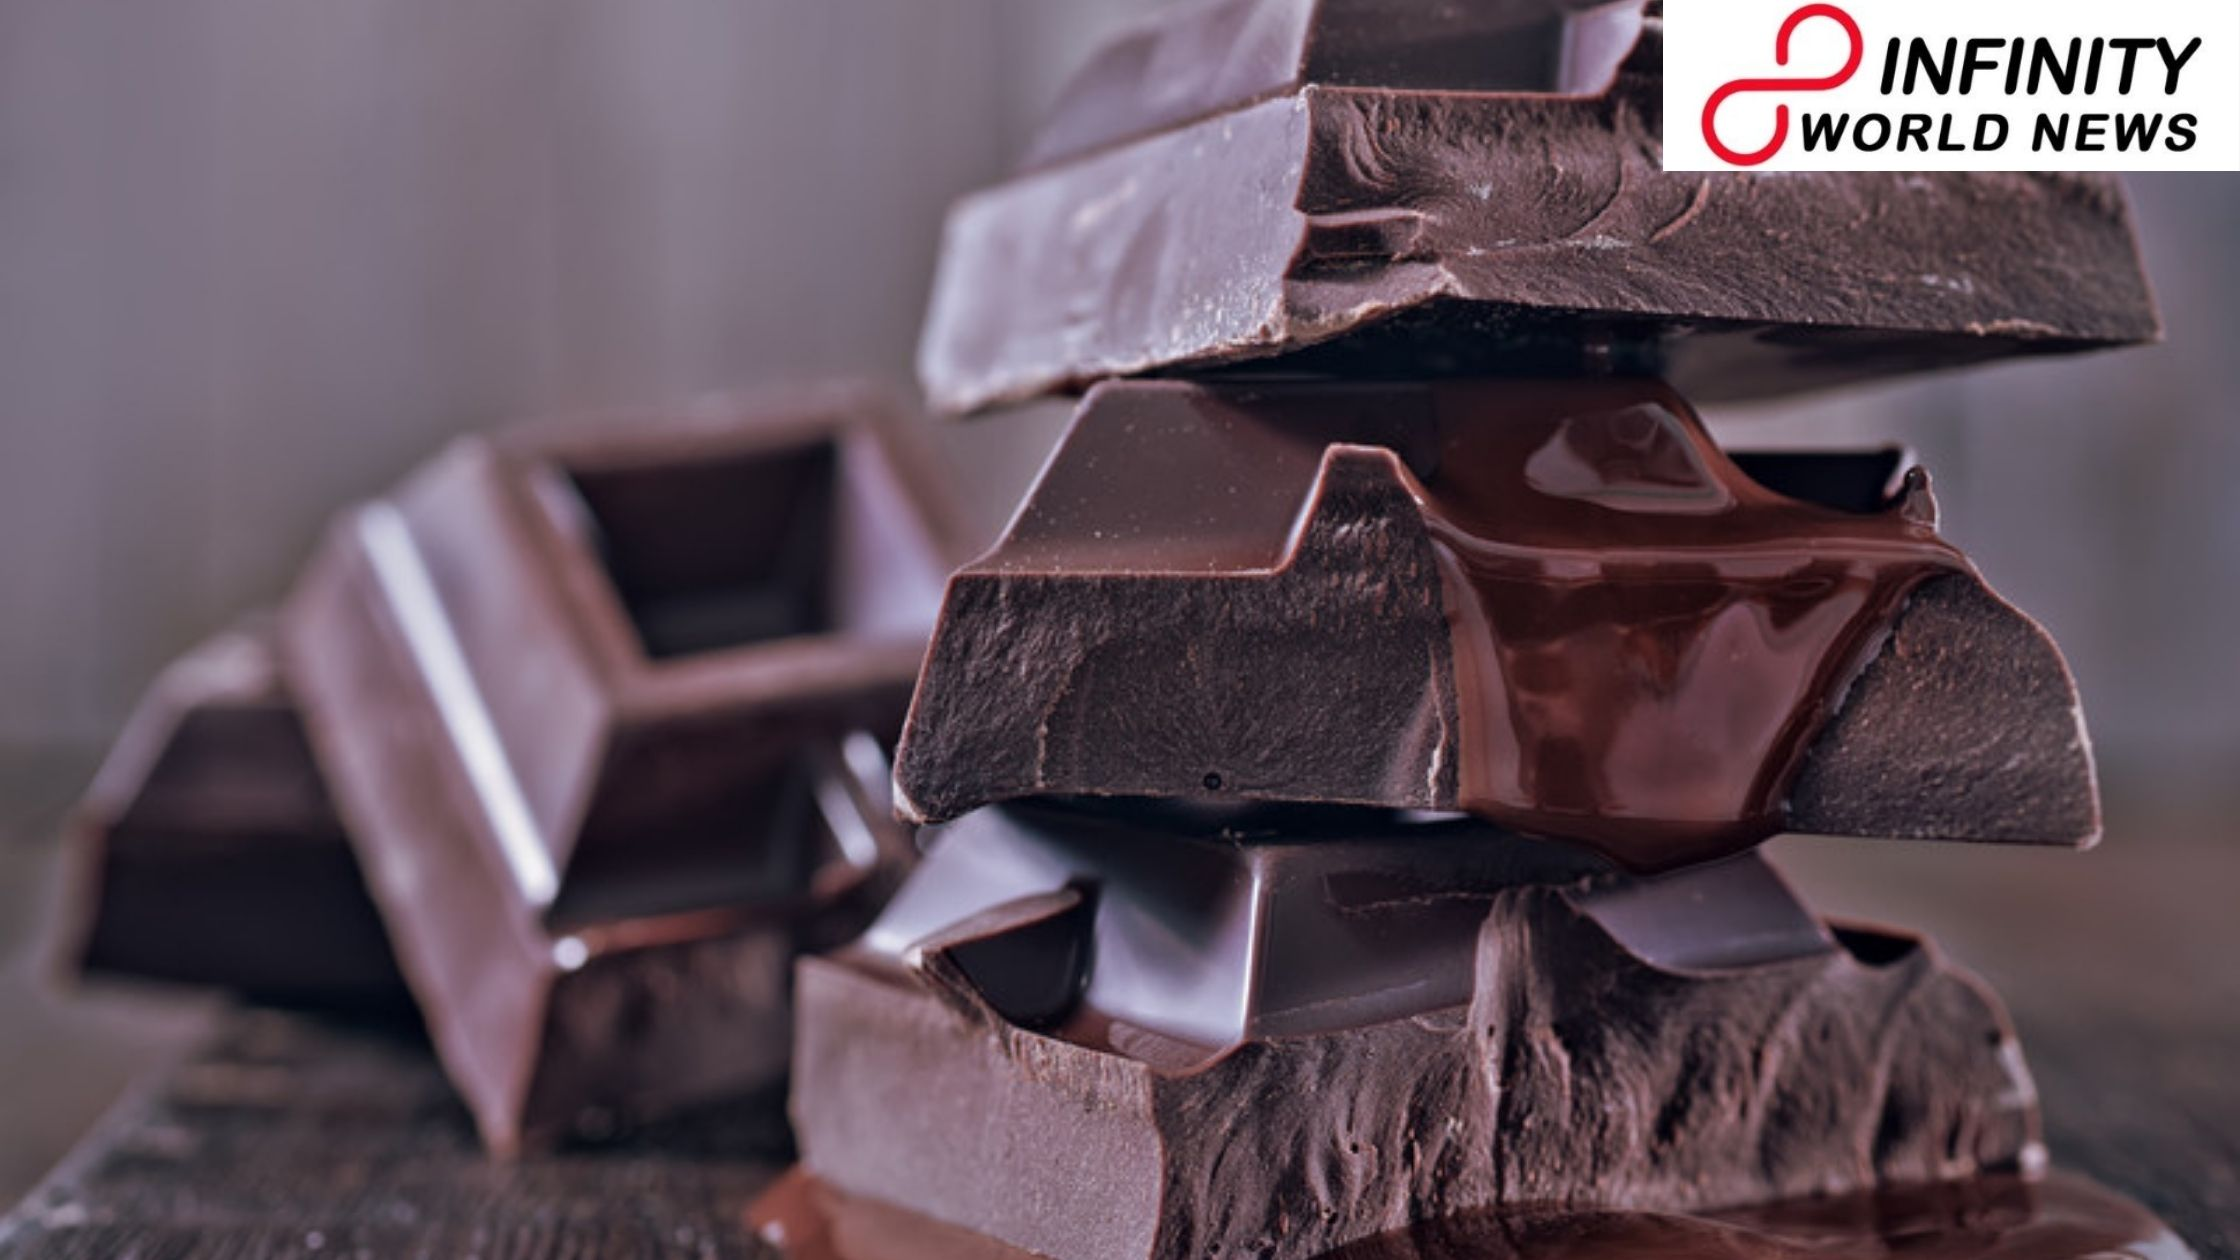 Advantages of Chocolates: 5 Reasons Why You Should Eat Chocolates